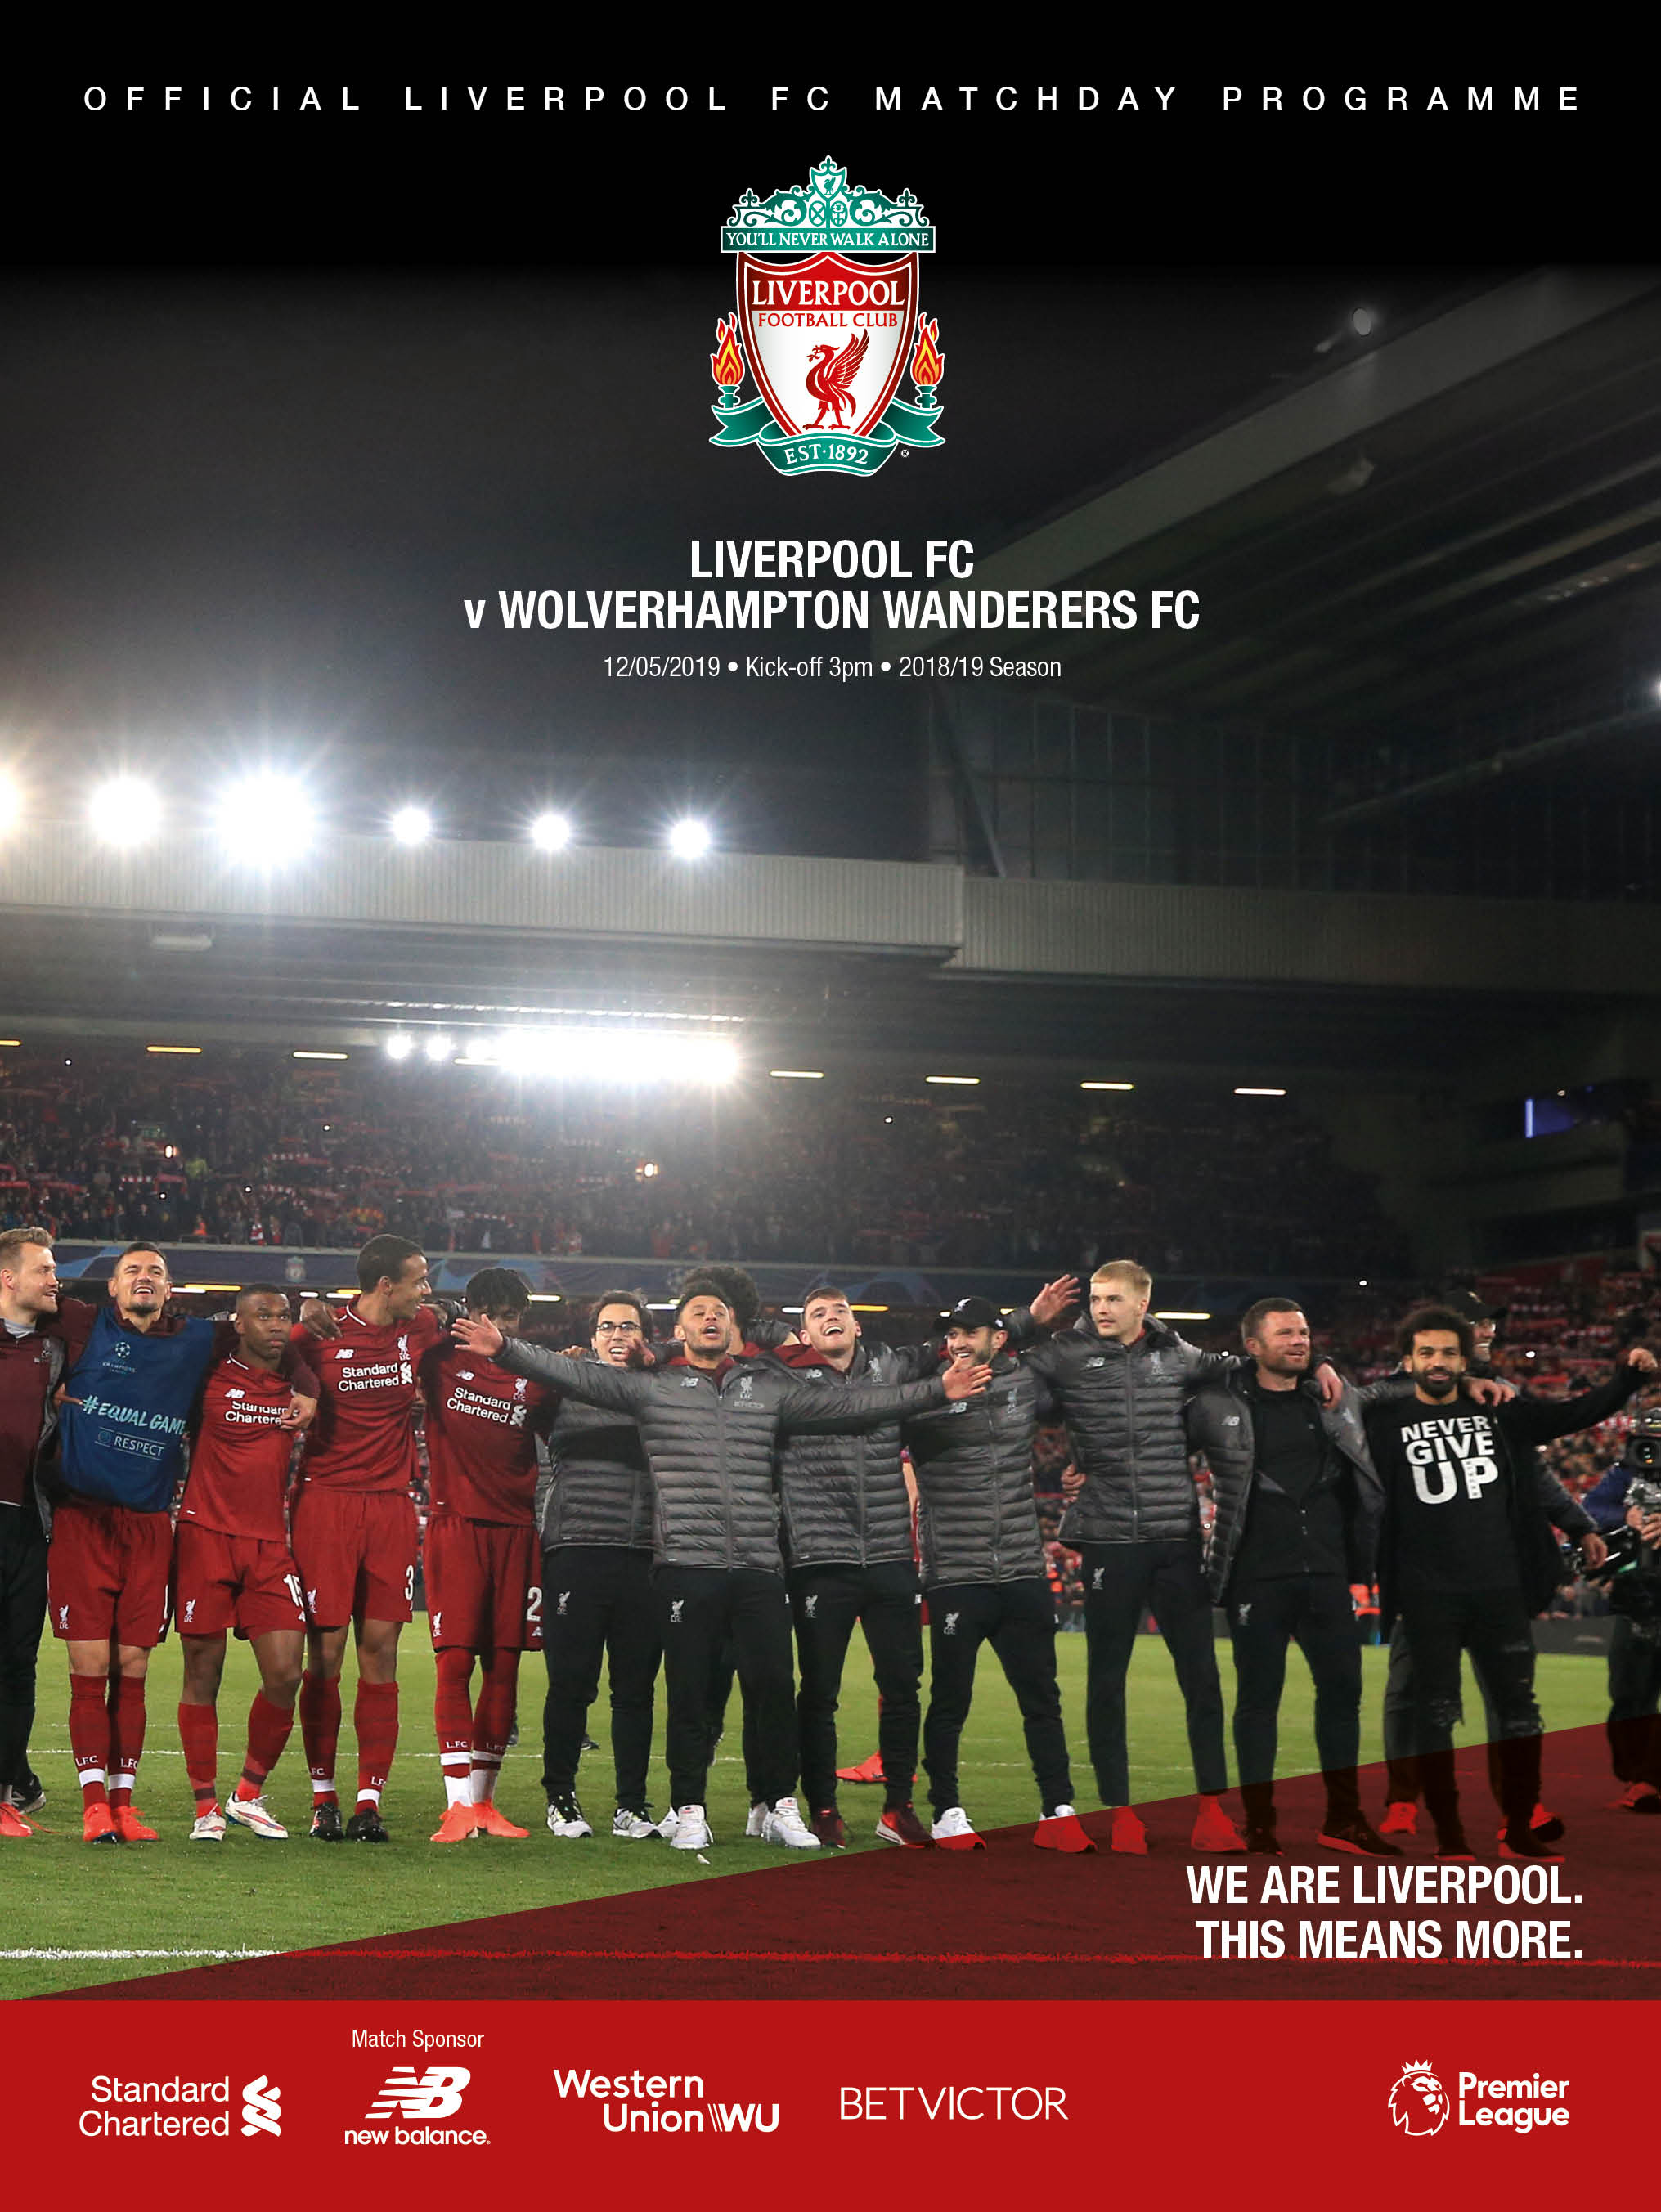 Liverpool v Wolverhampton Wanderers: Live matchday blog